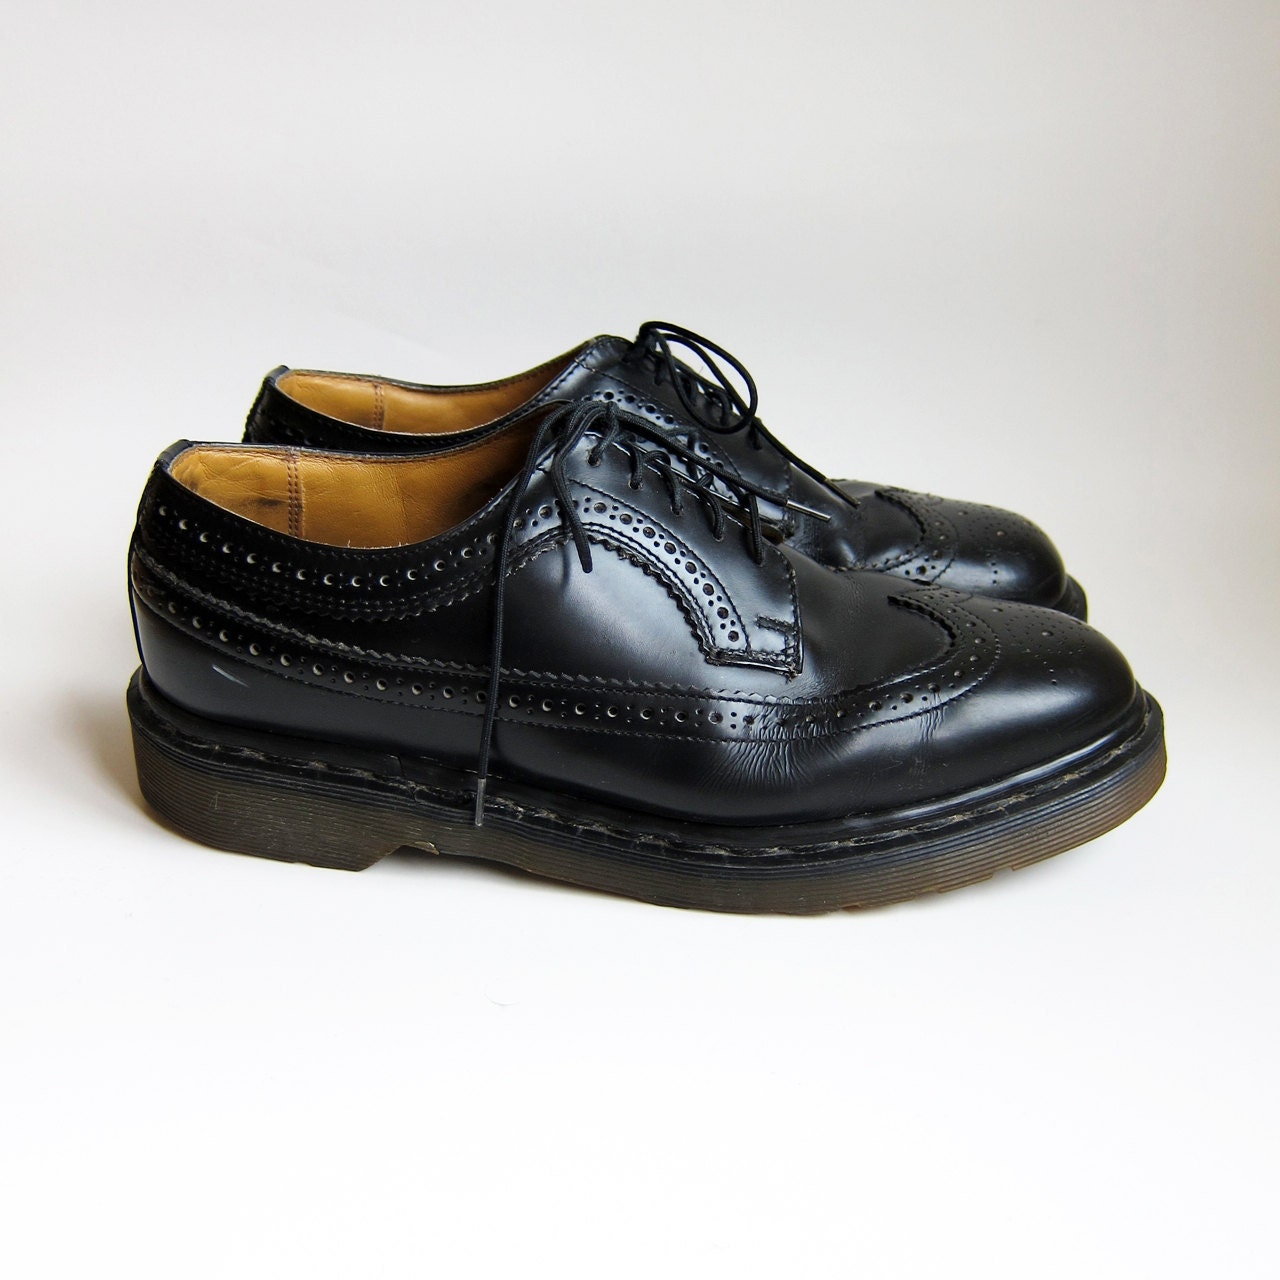 Oxford Shoes Women Like Dr Martens